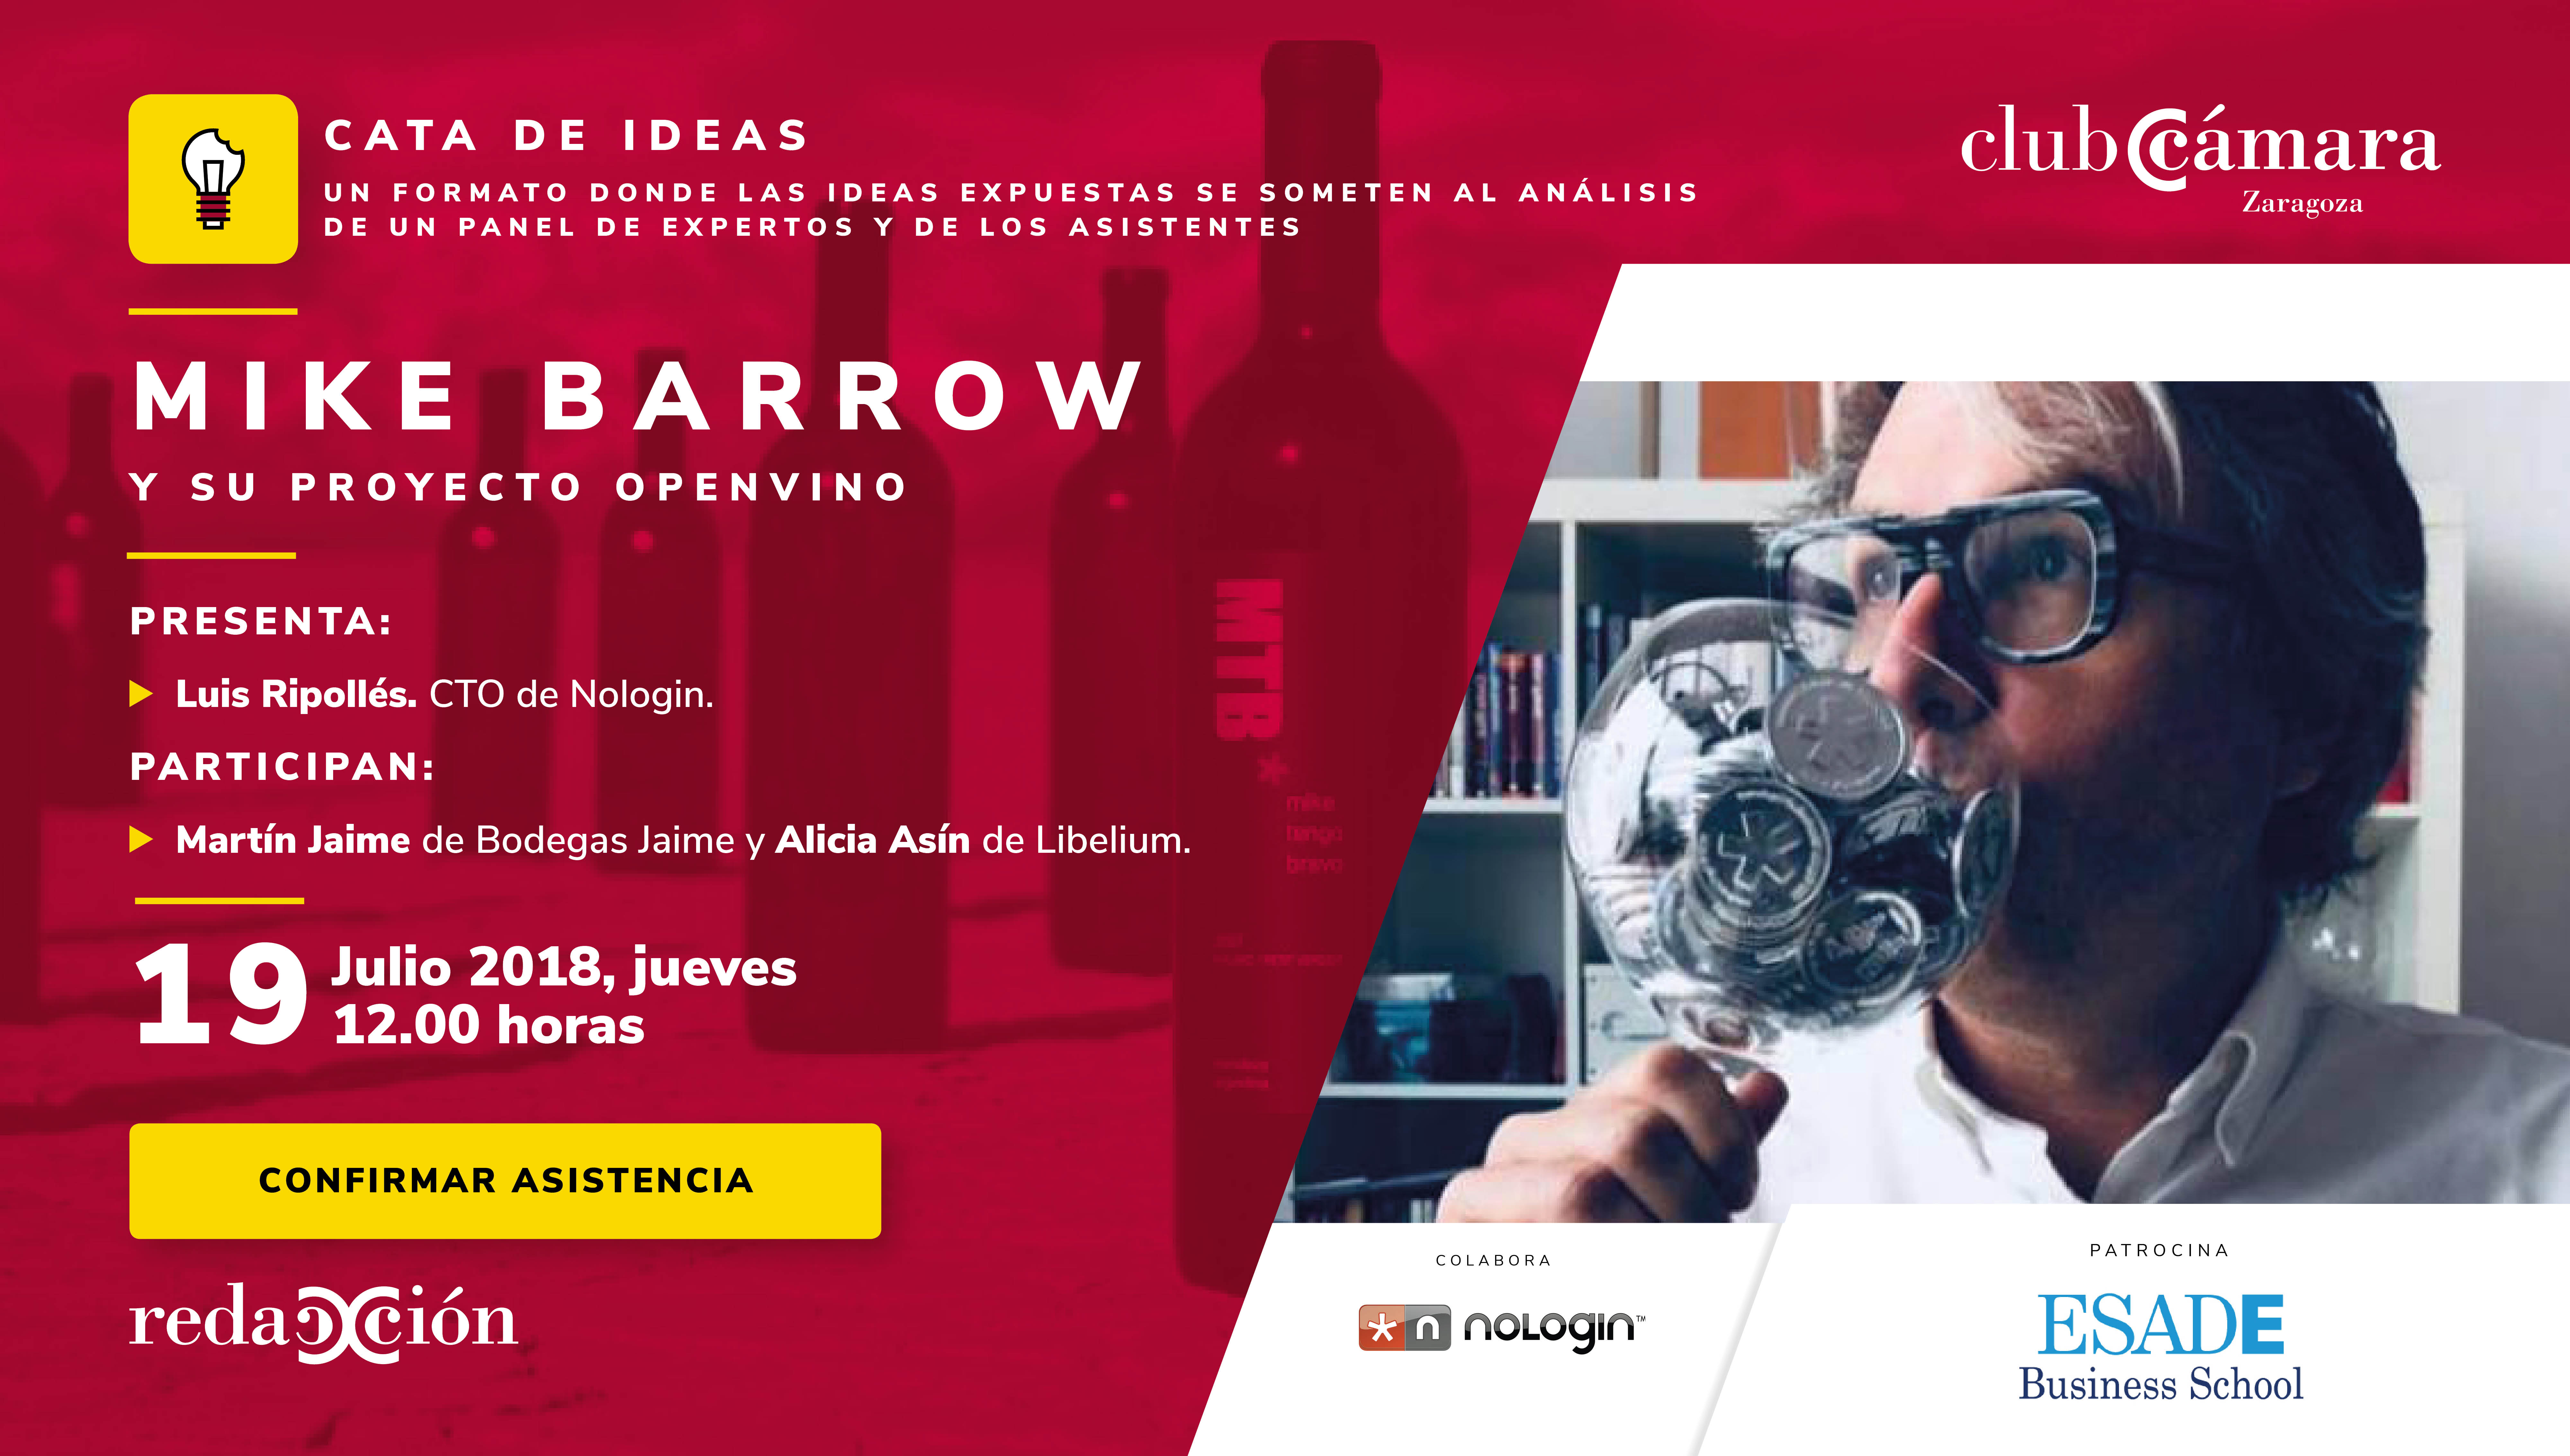 'Cata de ideas' con Mike Barrow, responsable del proyecto Openvino